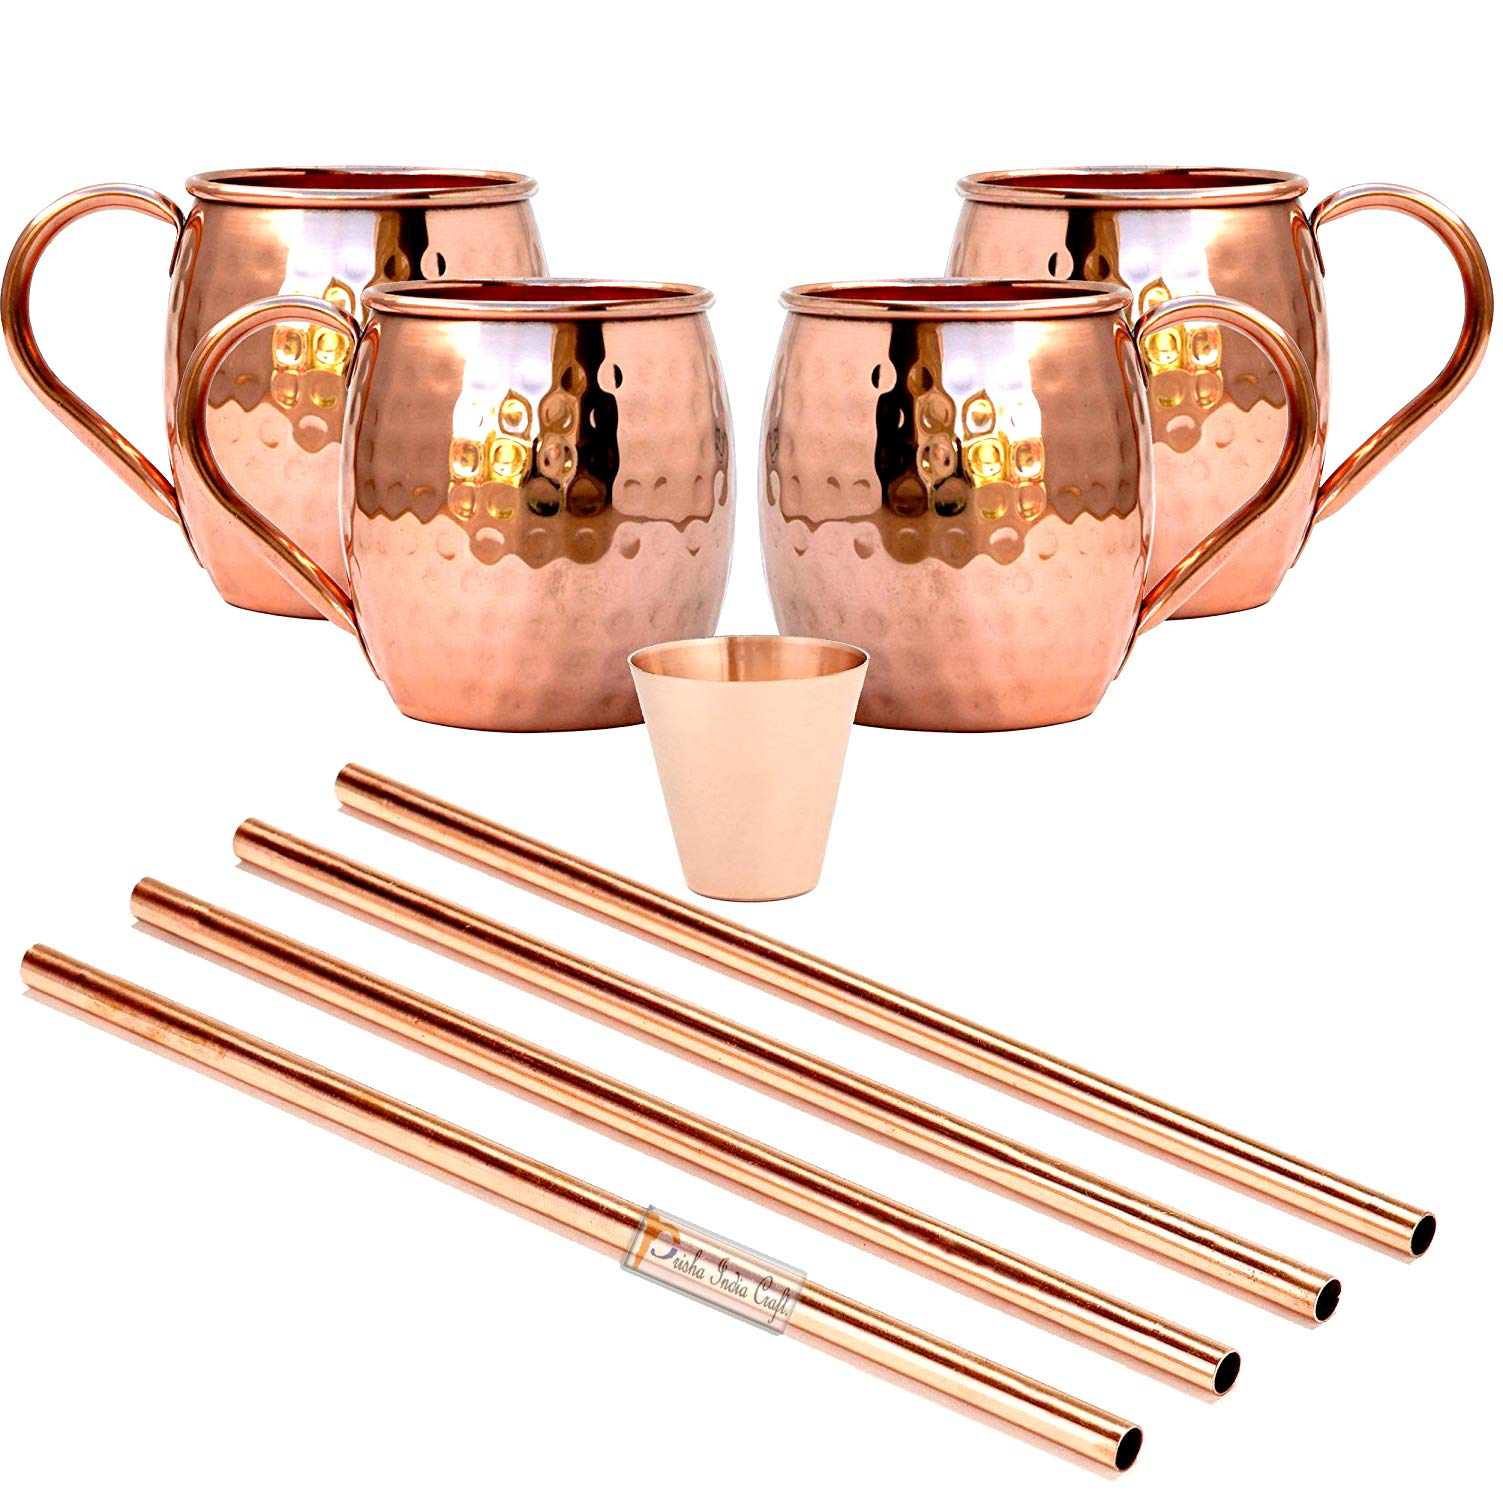 Prisha India Craft Moscow Mule Copper Mugs - Set of 4-100% HANDCRAFTED - Pure Solid Copper Mugs 16 oz Gift Set with BONUS: Highest Quality Cocktail Copper Straws and 1 Shot Glass